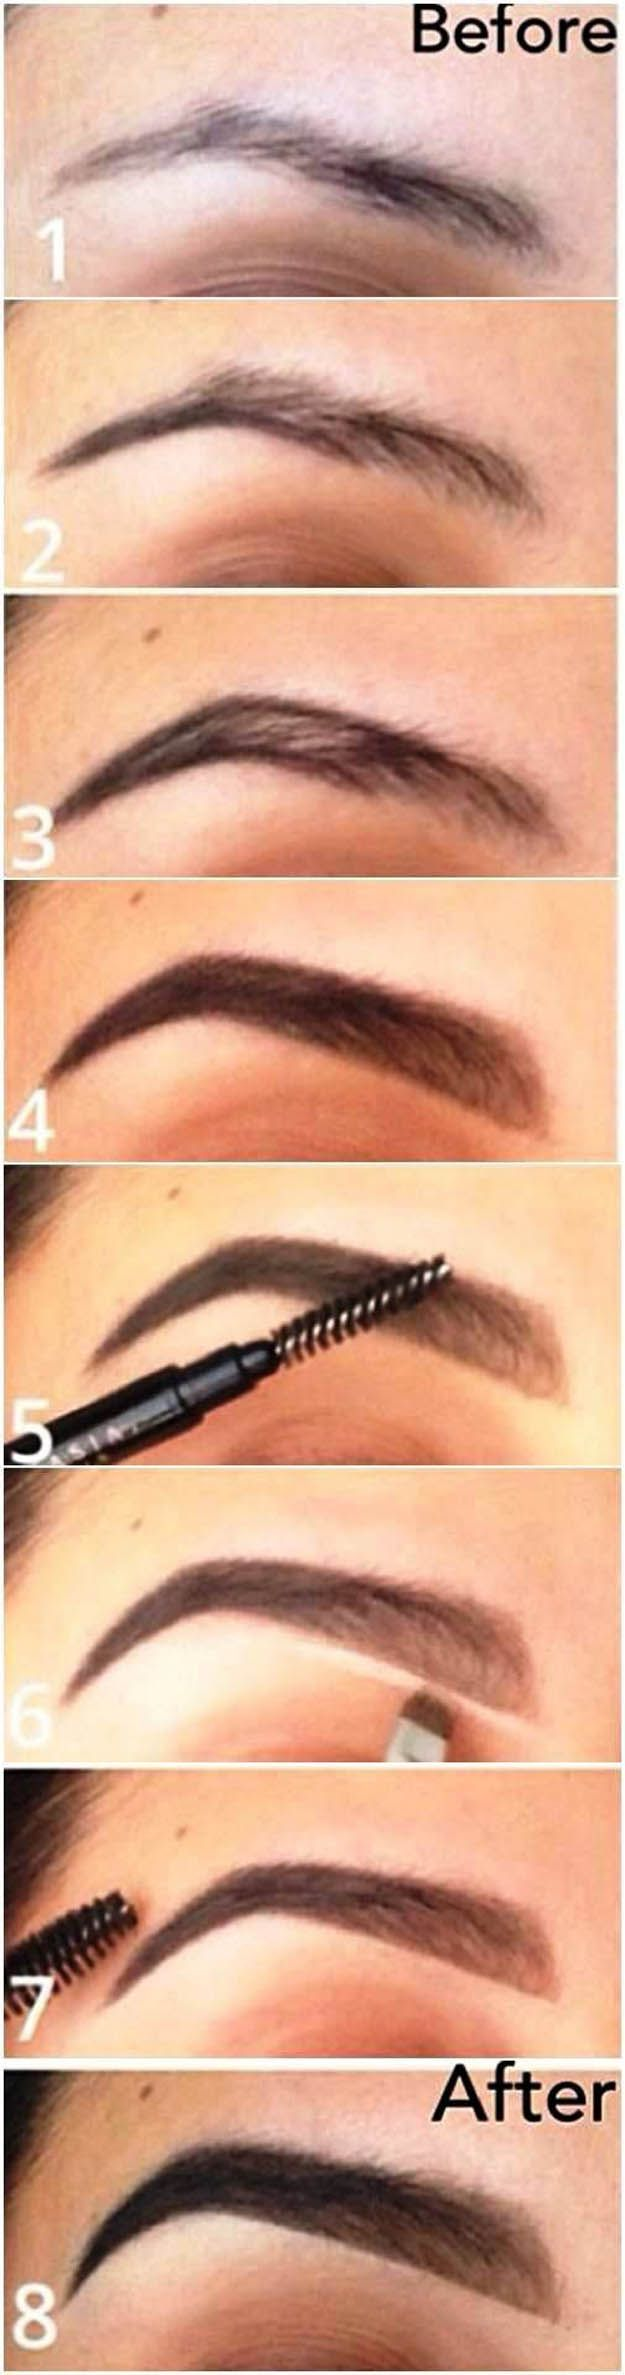 Eyebrow Makeup Tutorials for Beginners by Makeup Tutorials at http://makeuptutorials.com/makeup-tutorials-beauty-tips